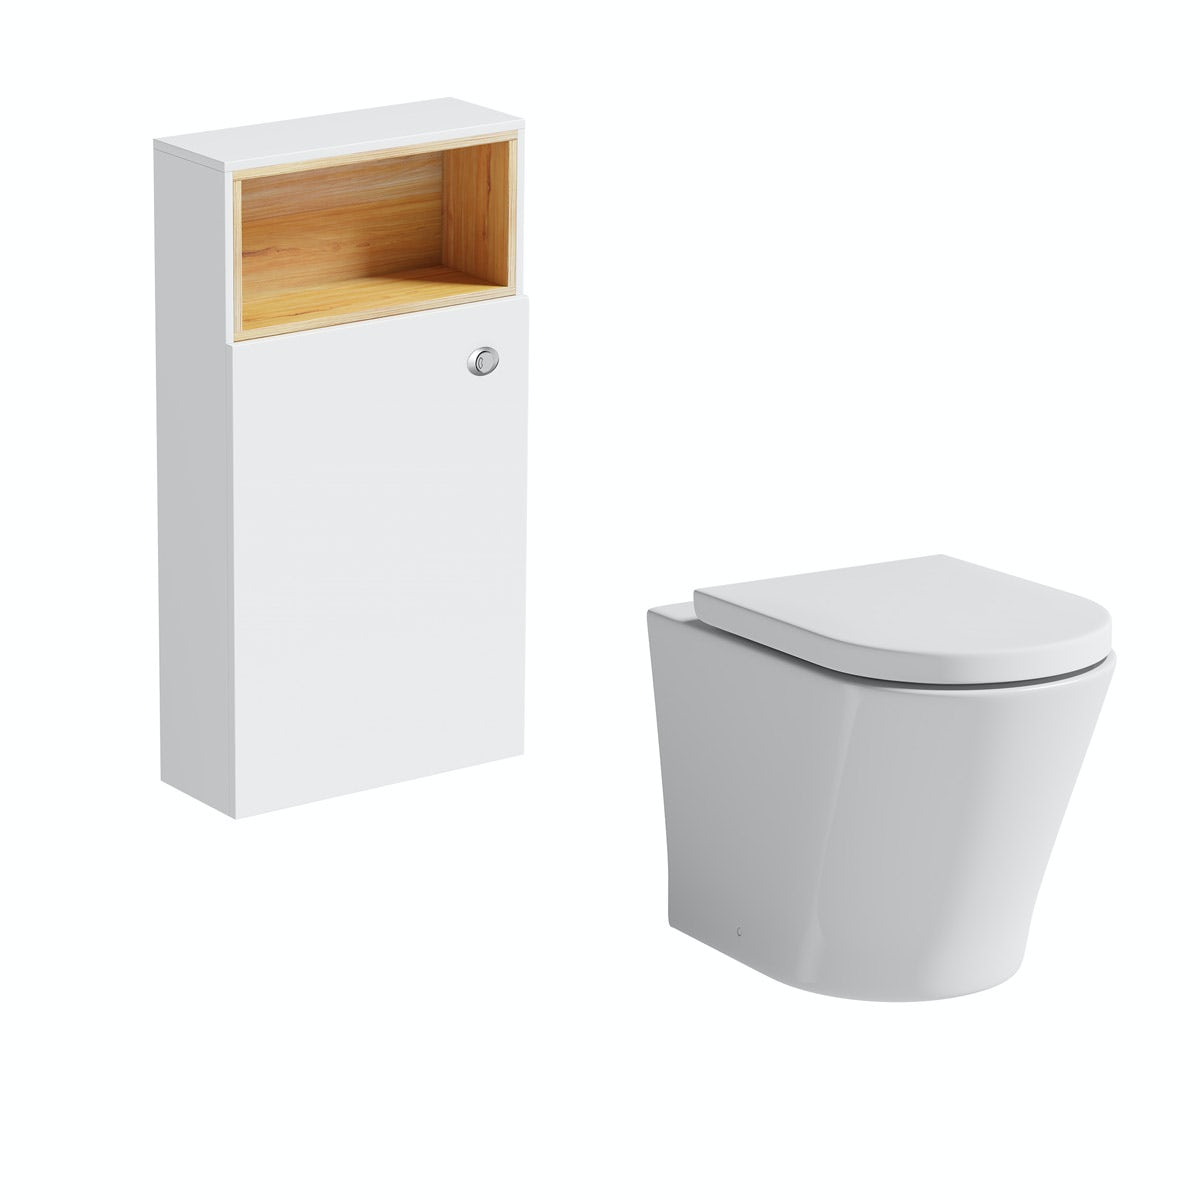 Mode Tate white & oak slimline back to wall toilet unit with contemporary toilet and seat